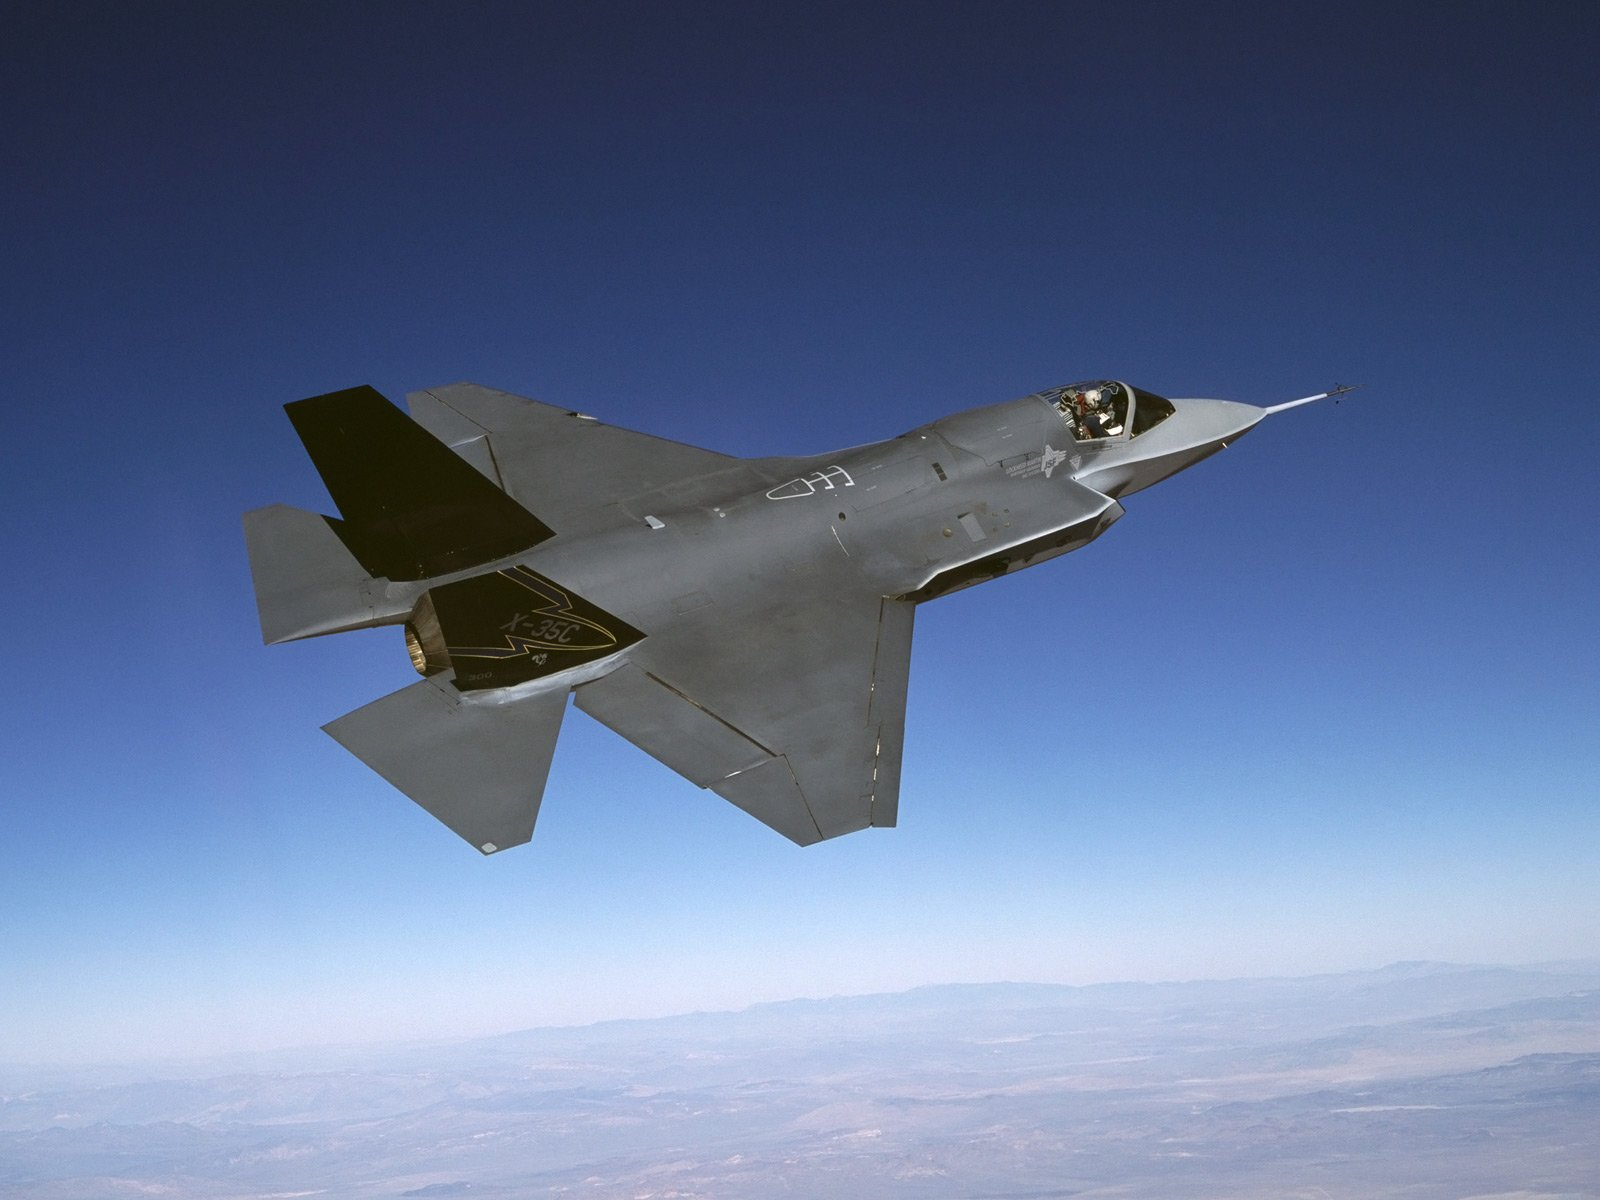 Lockheed Martin F 35 Lightning II Computer Wallpapers Desktop 1600x1200